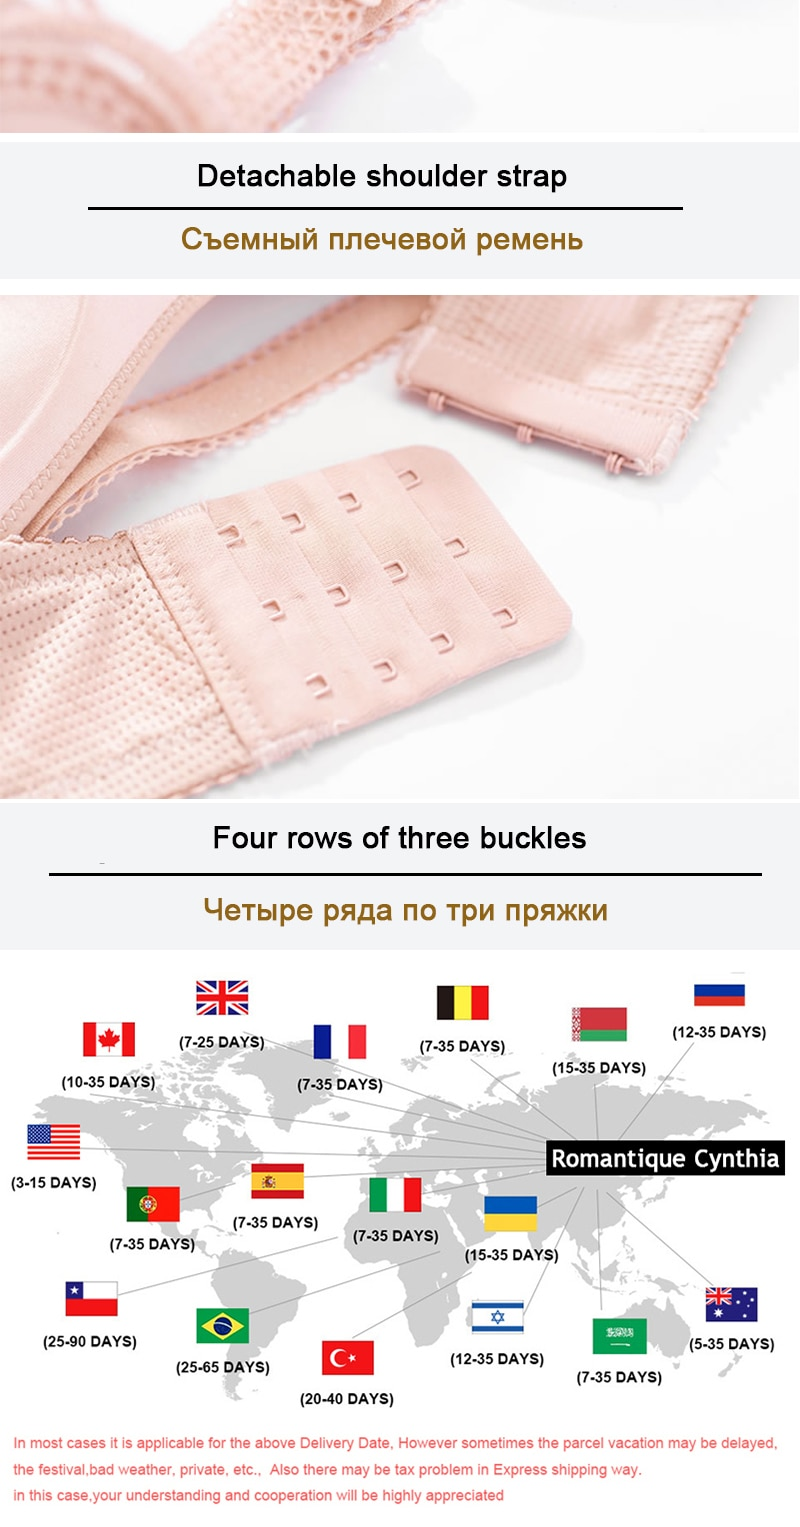 Strapless Top Bra For Women Small Breast Lace Underwear Push Up Brassiere Sexy Lingerie Without Straps Bralette Invisible Bras